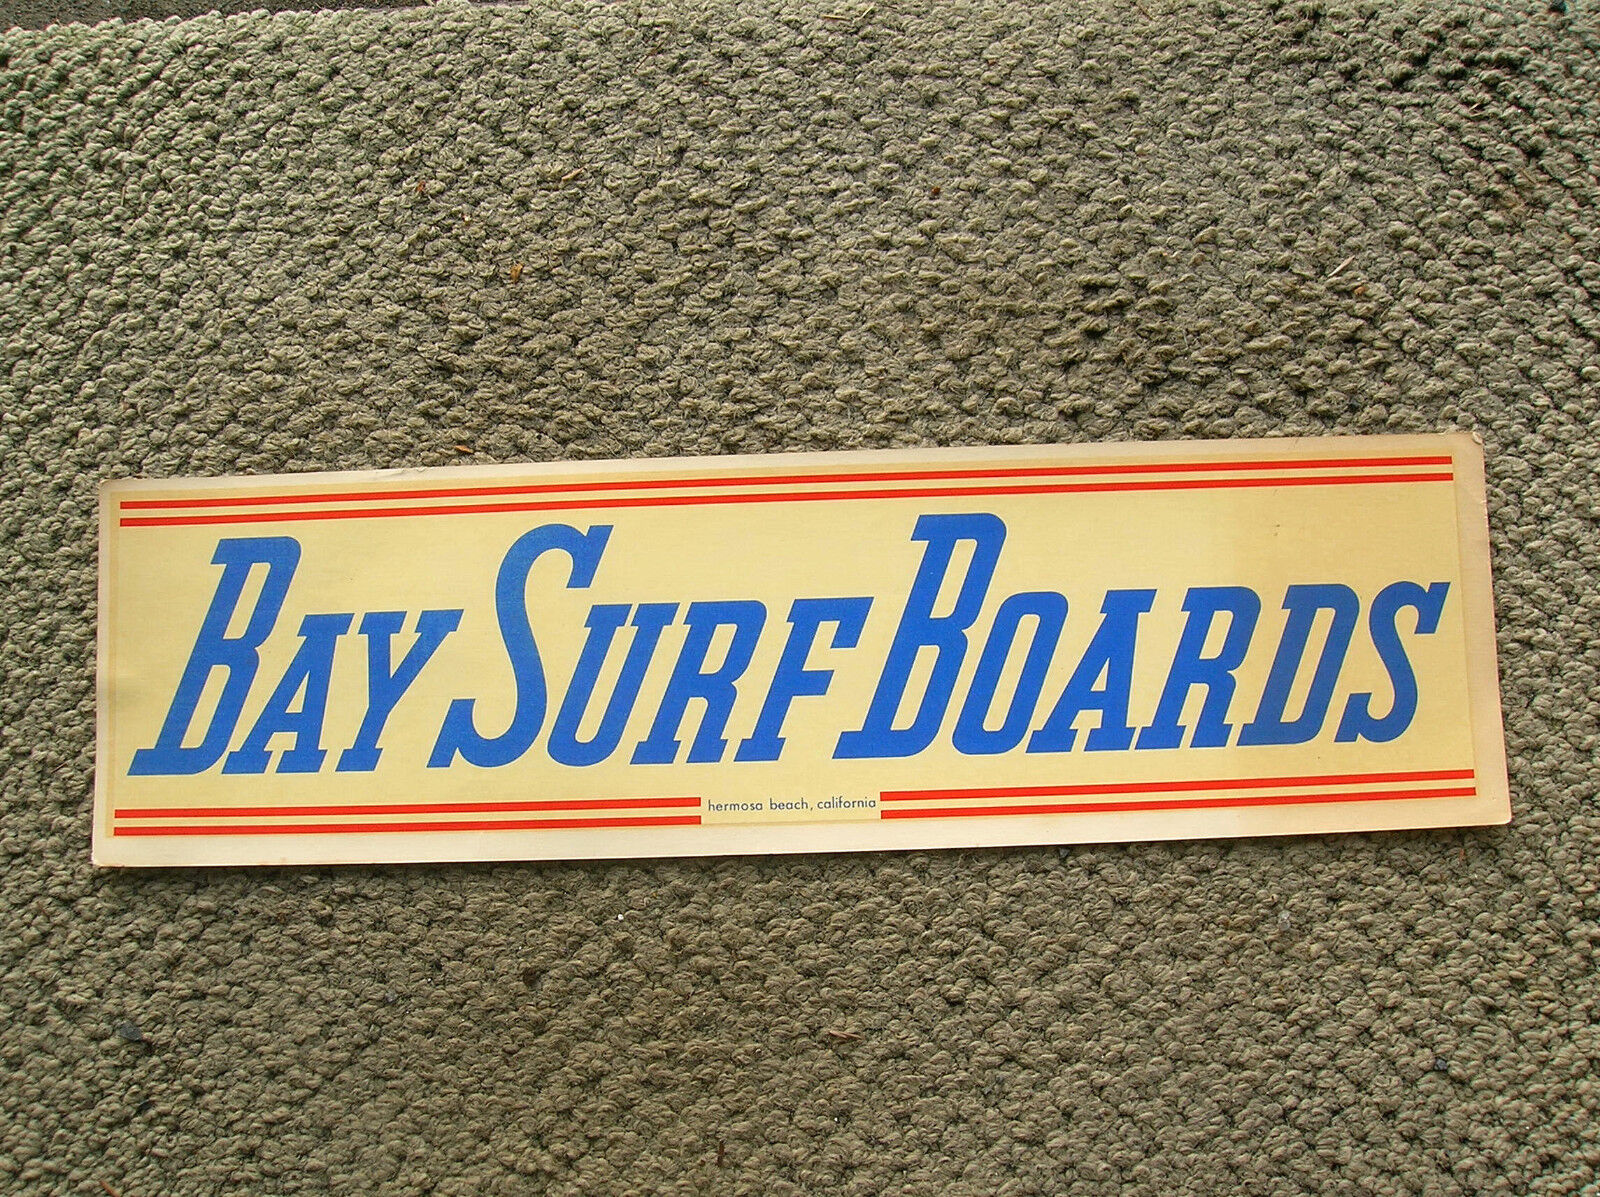 Rare large Bay surf boards vintage water slide decal surfing 1960s hermosa beach